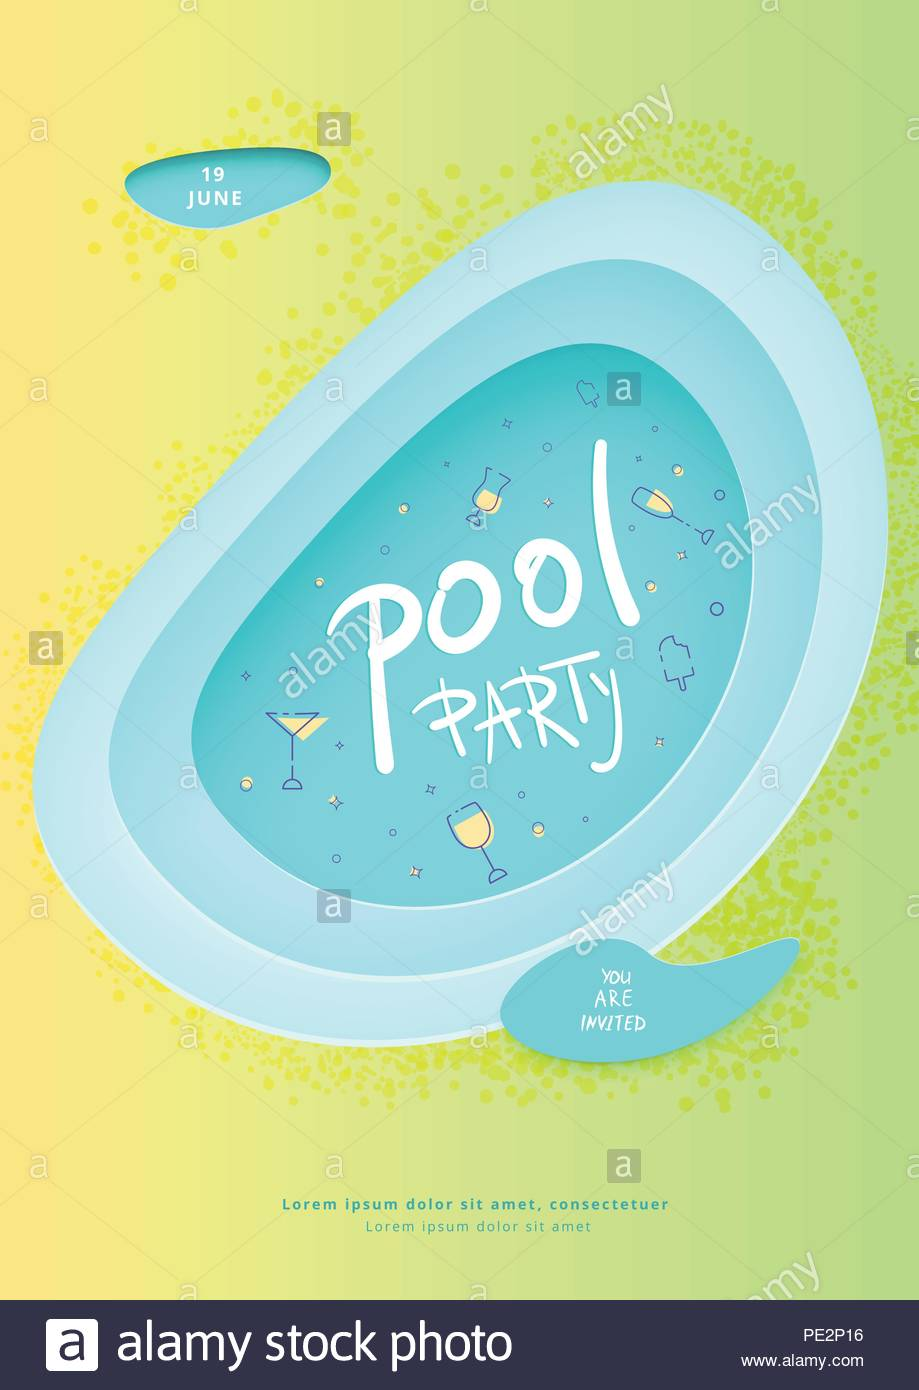 pool party vertical flyer summer celebration banner with papercut shapes and decoration template for event design vector illustration PE2P16